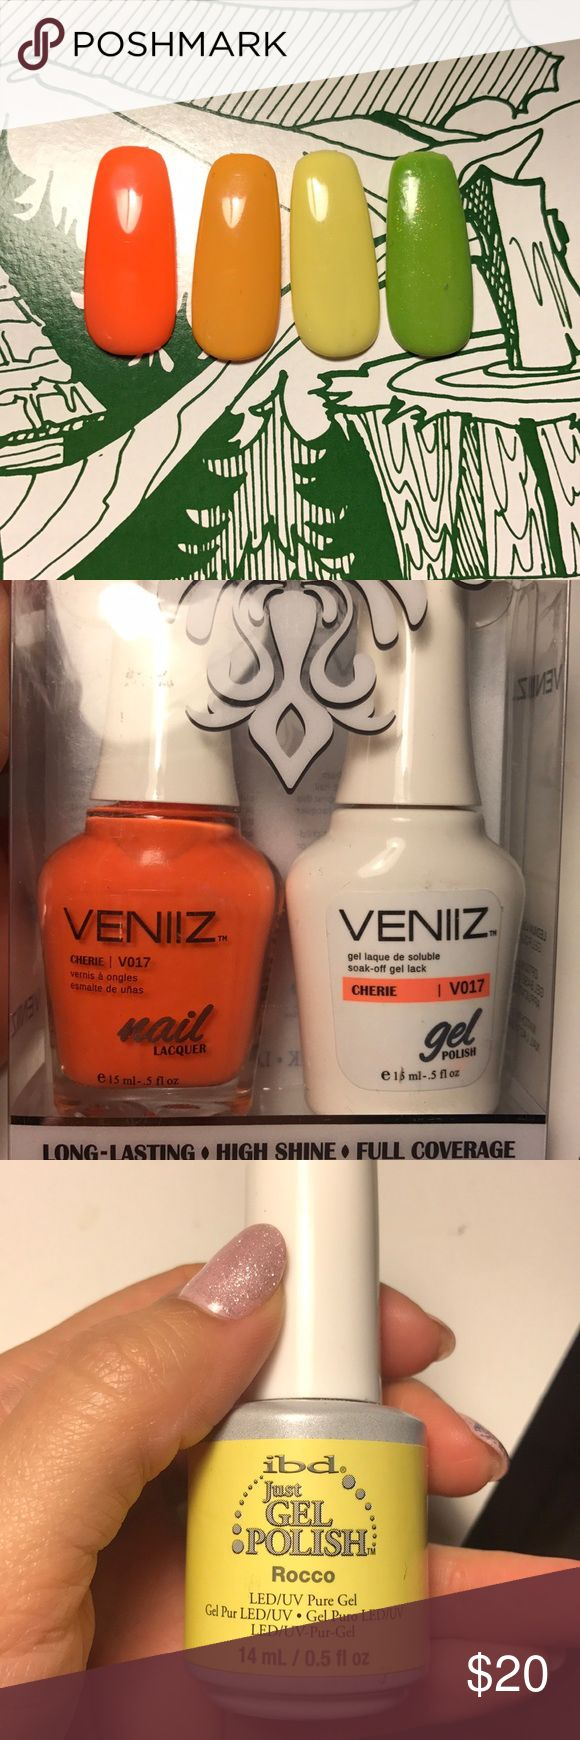 Never used gel polishes Never used just for these swatches. They are great nail art colors to create colorful nail art. The orange one comes with the matching regular polish. The green one has slight shimmer. These are all very good gel polish brands. I am nail tech so all of these were bought from a good source. Makeup Brushes & Tools